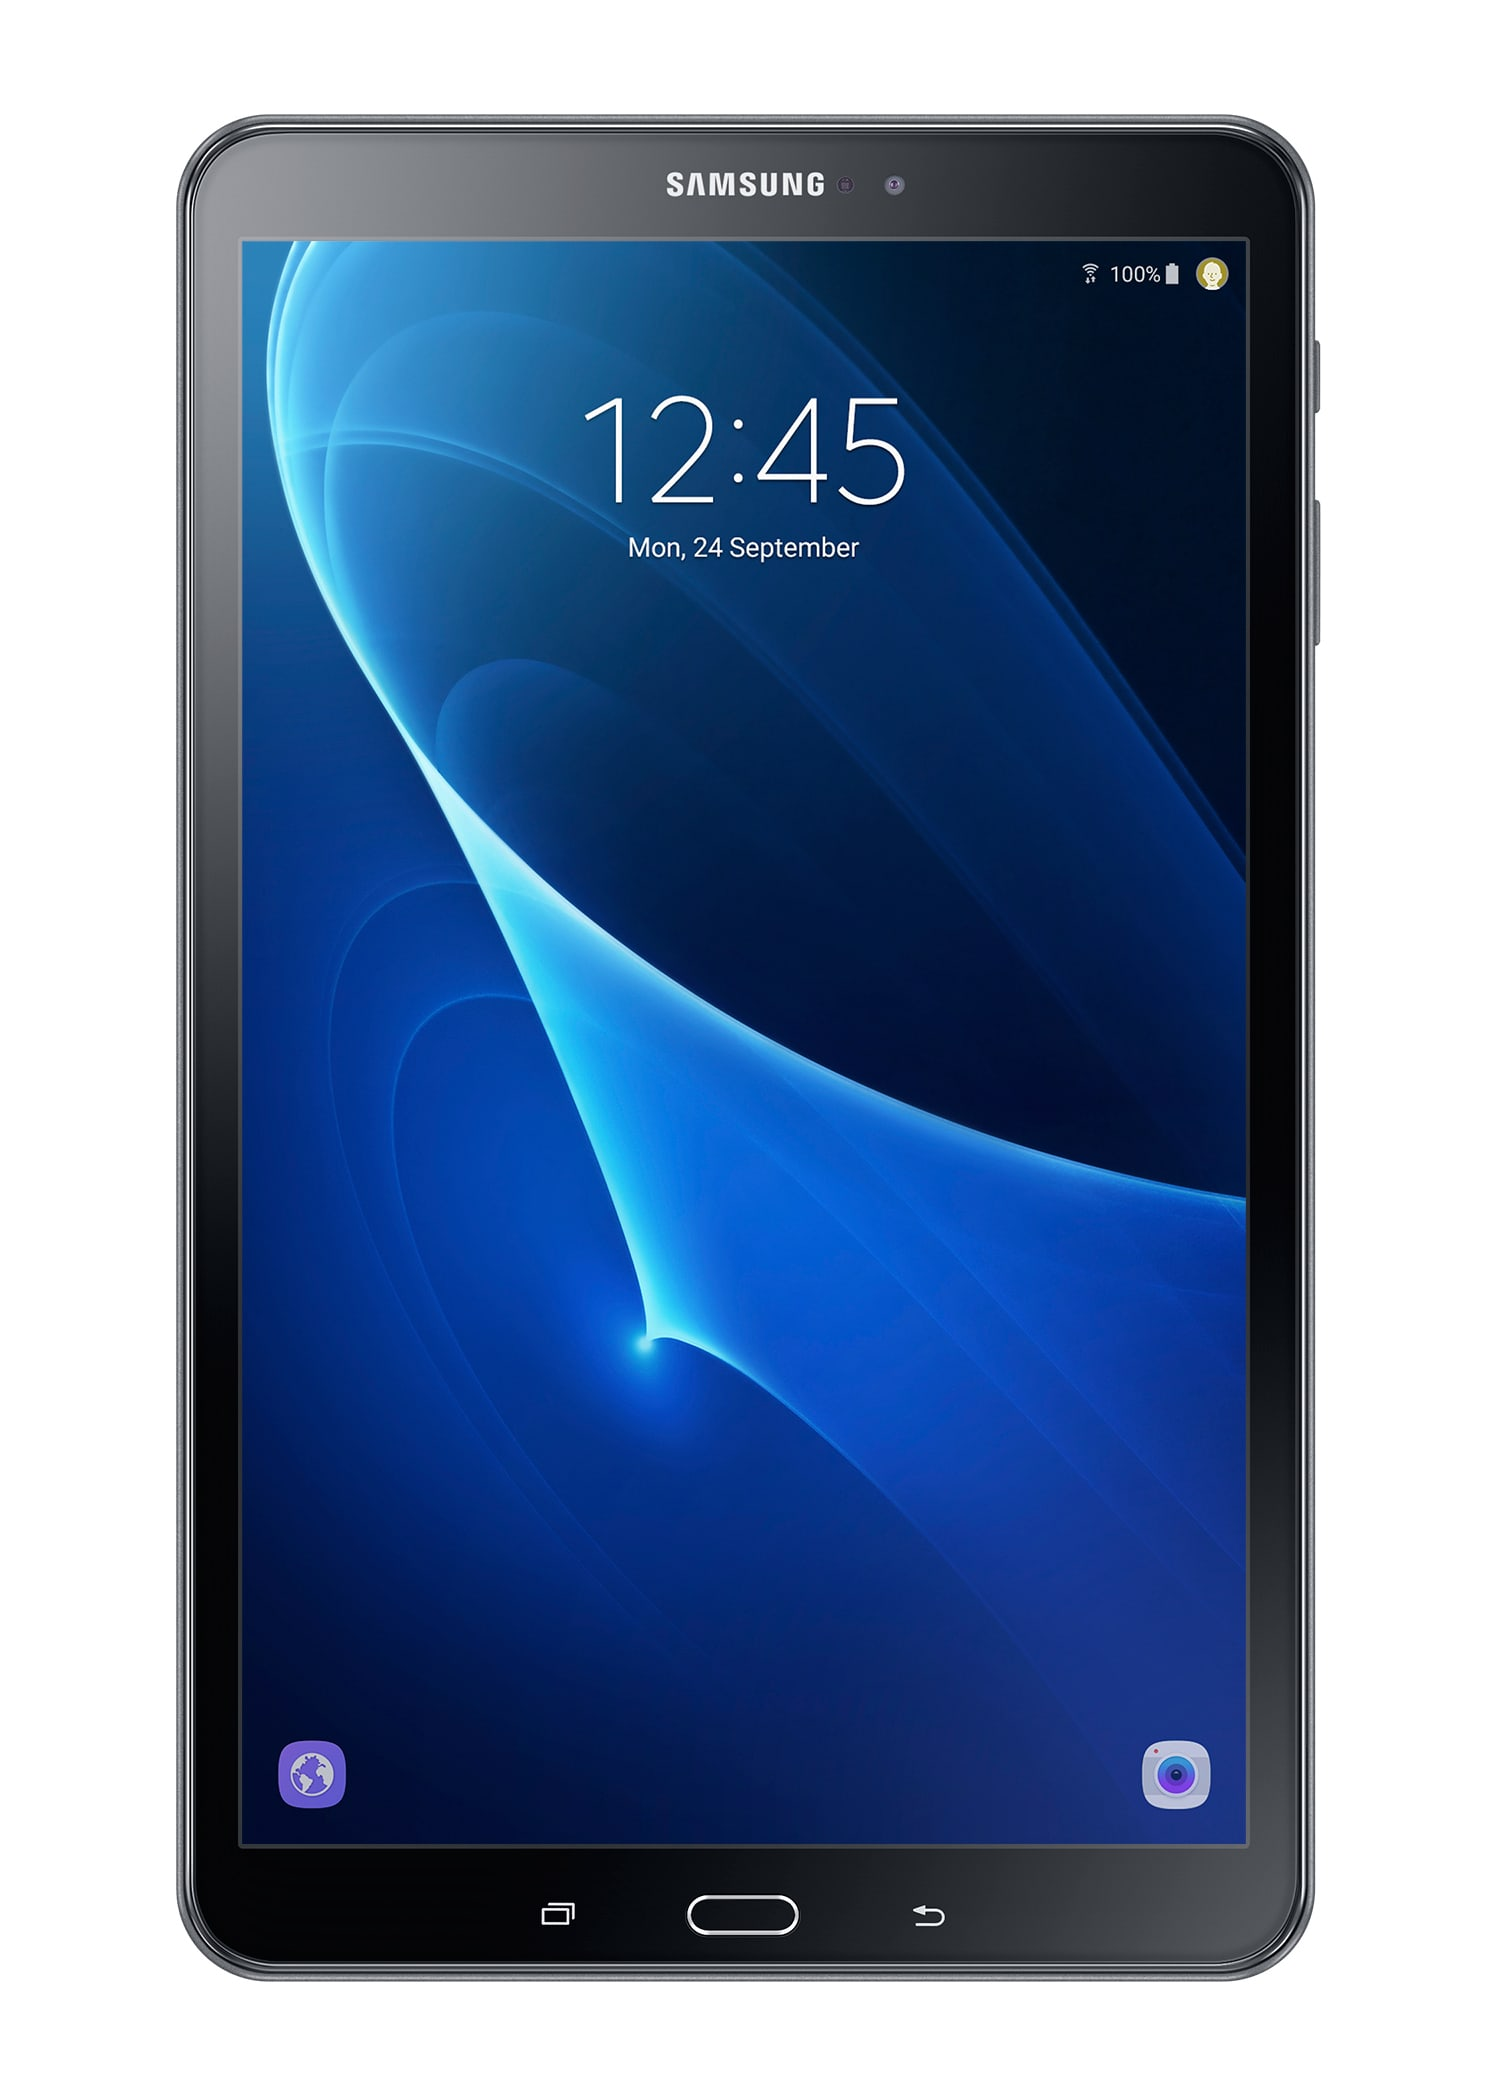 Samsung Galaxy Tab A 10.1 WIFI Tablet 25,54cm 10,1'' Android 6.0 8MP 16GB für 229,00 Euro